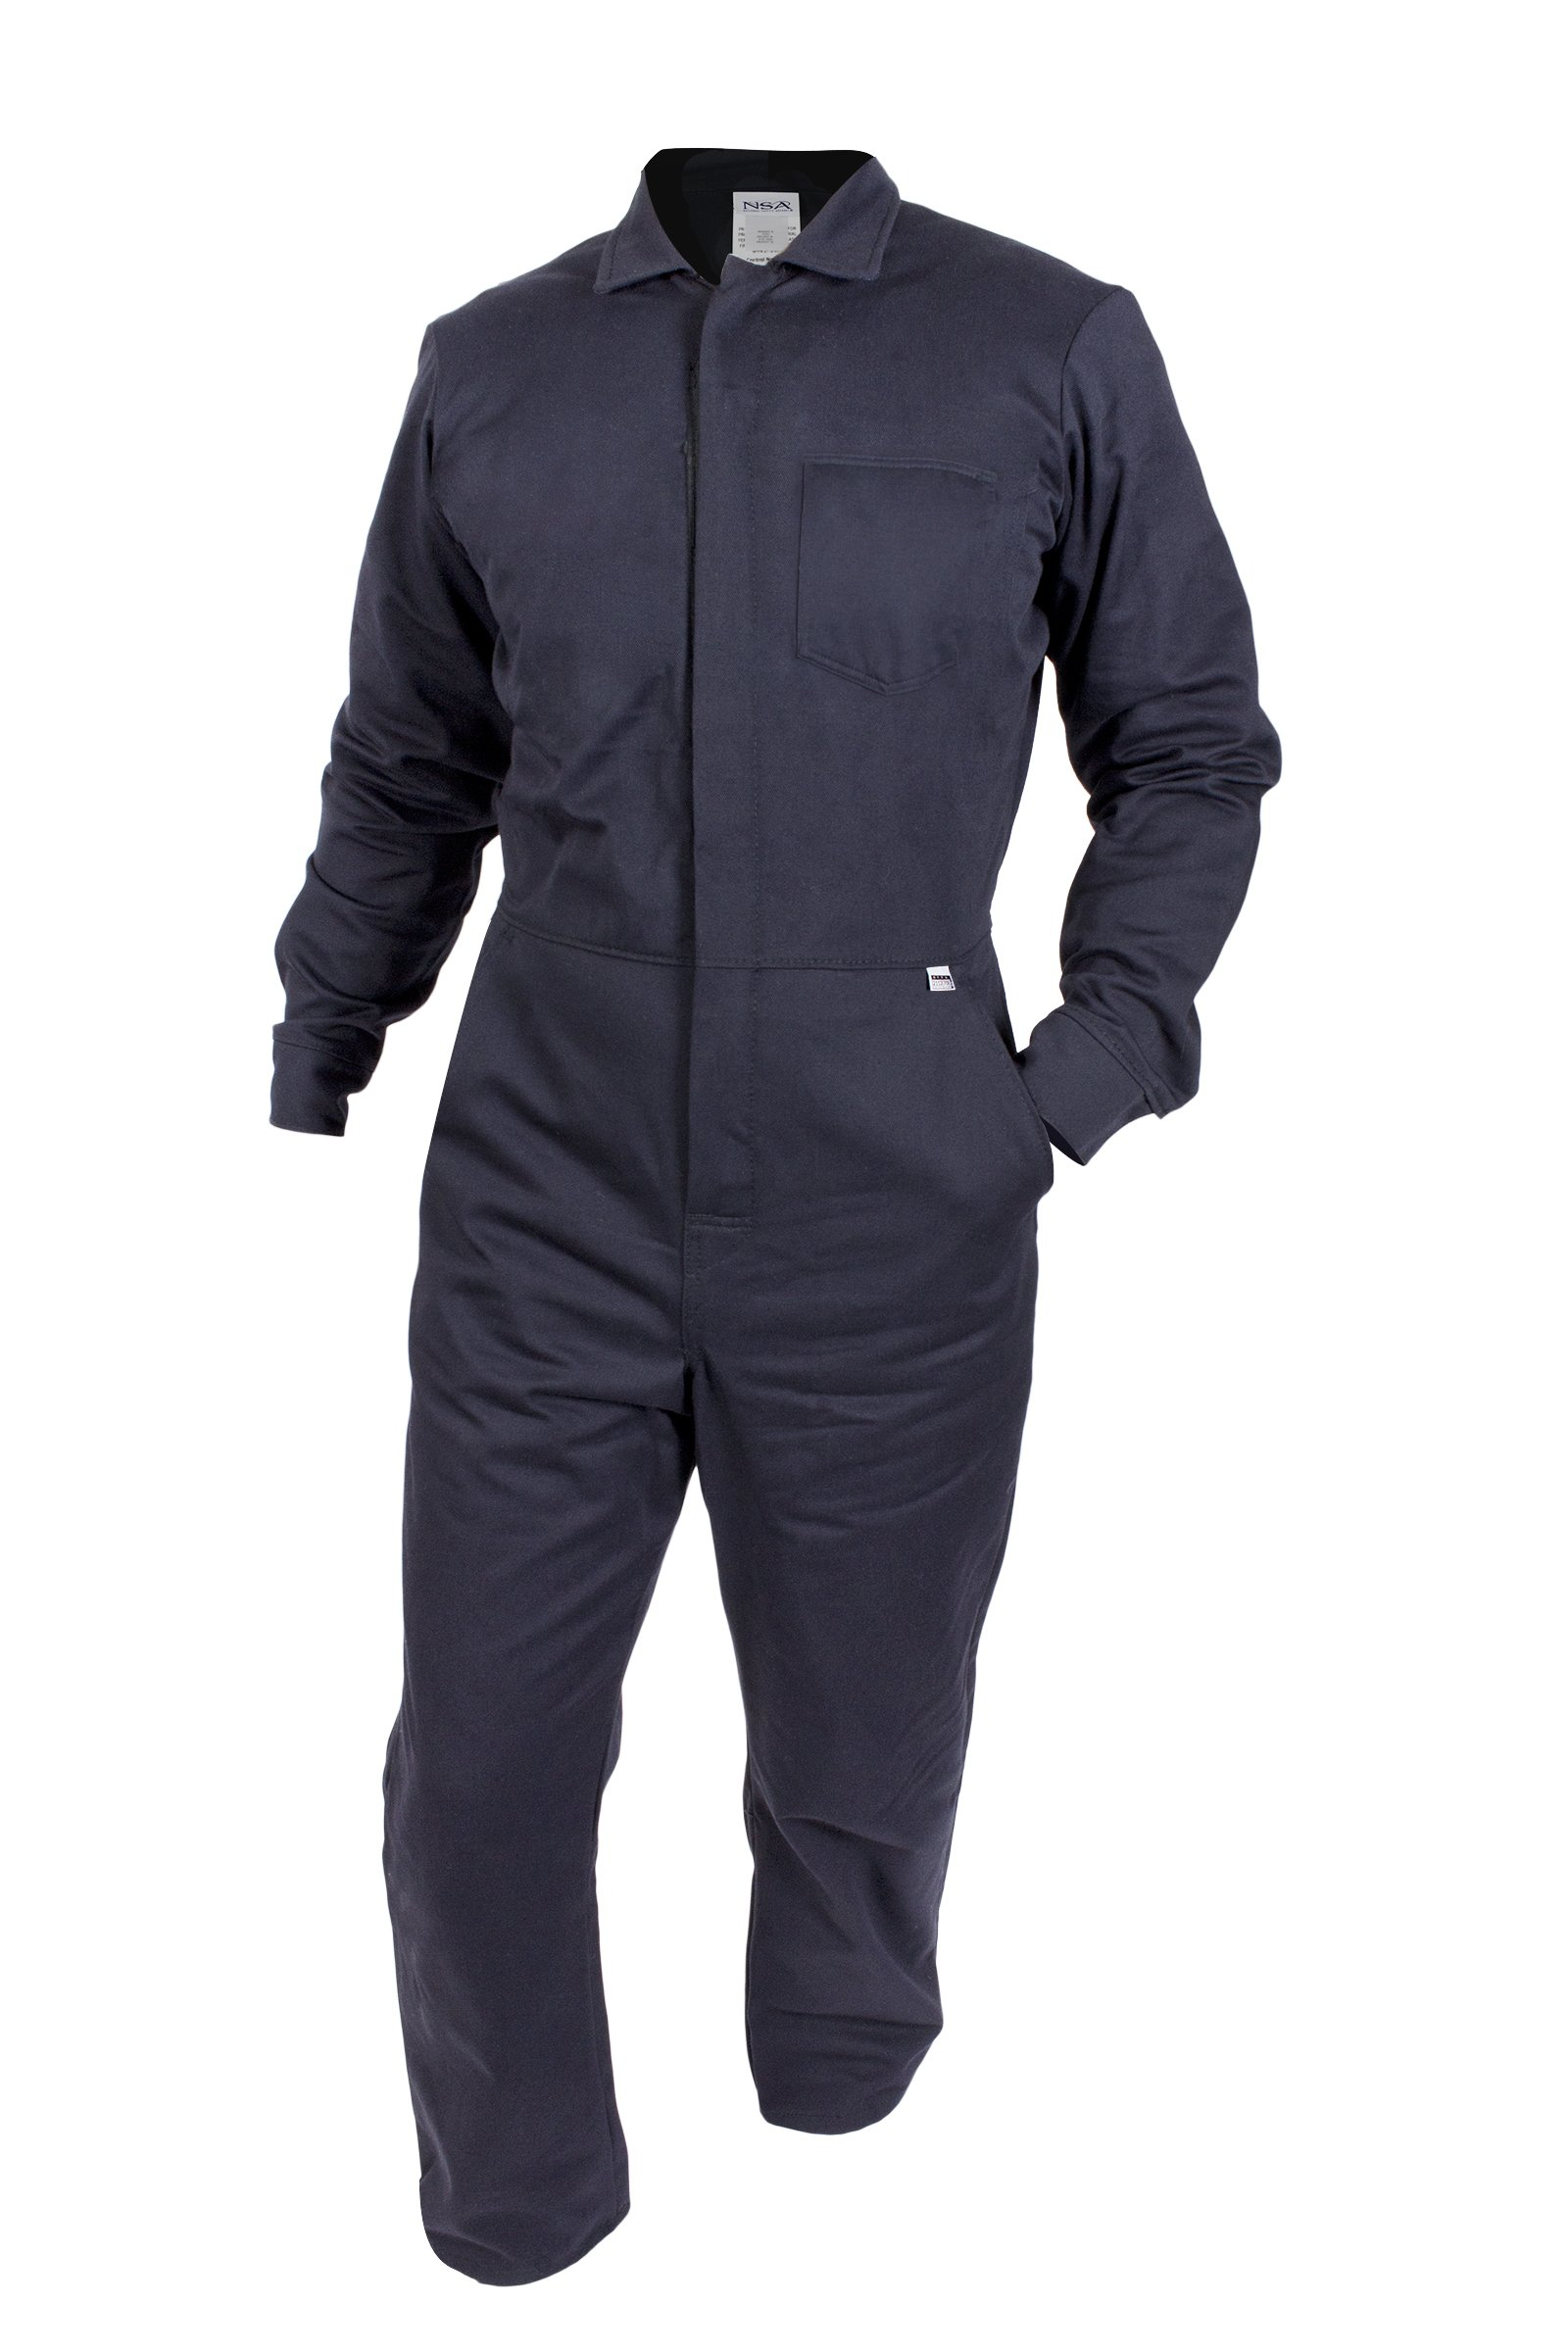 National Safety Apparel C88EJCZ2X32 ArcGuard FR UltraSoft Contractor Coverall, XX-Large, Navy